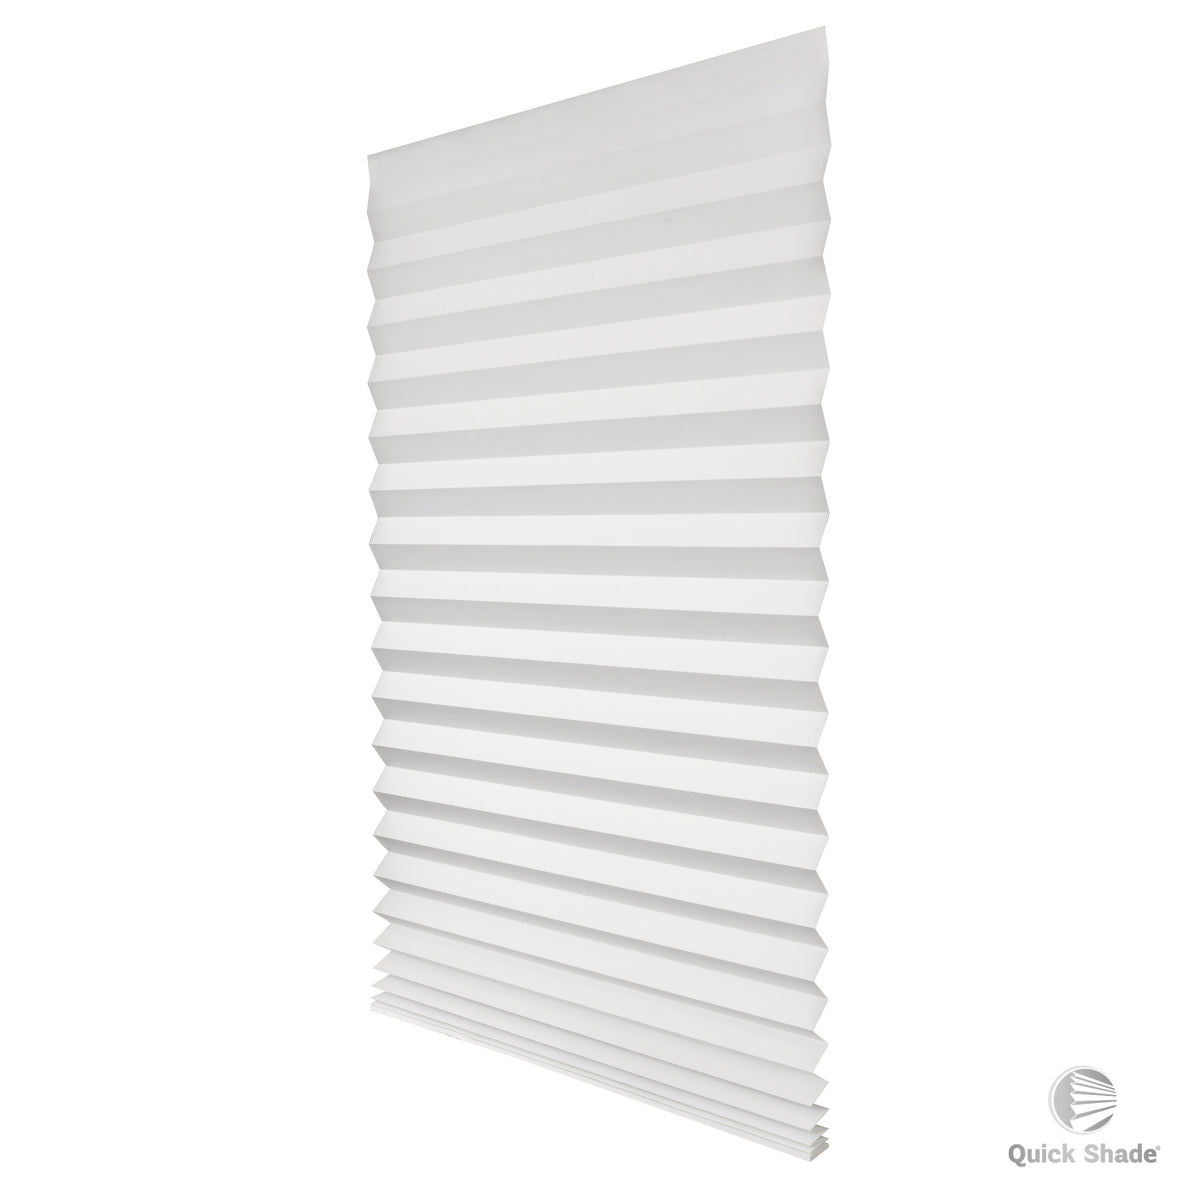 Quickshade Instant Temporary Blinds Single Pack Quick Shade